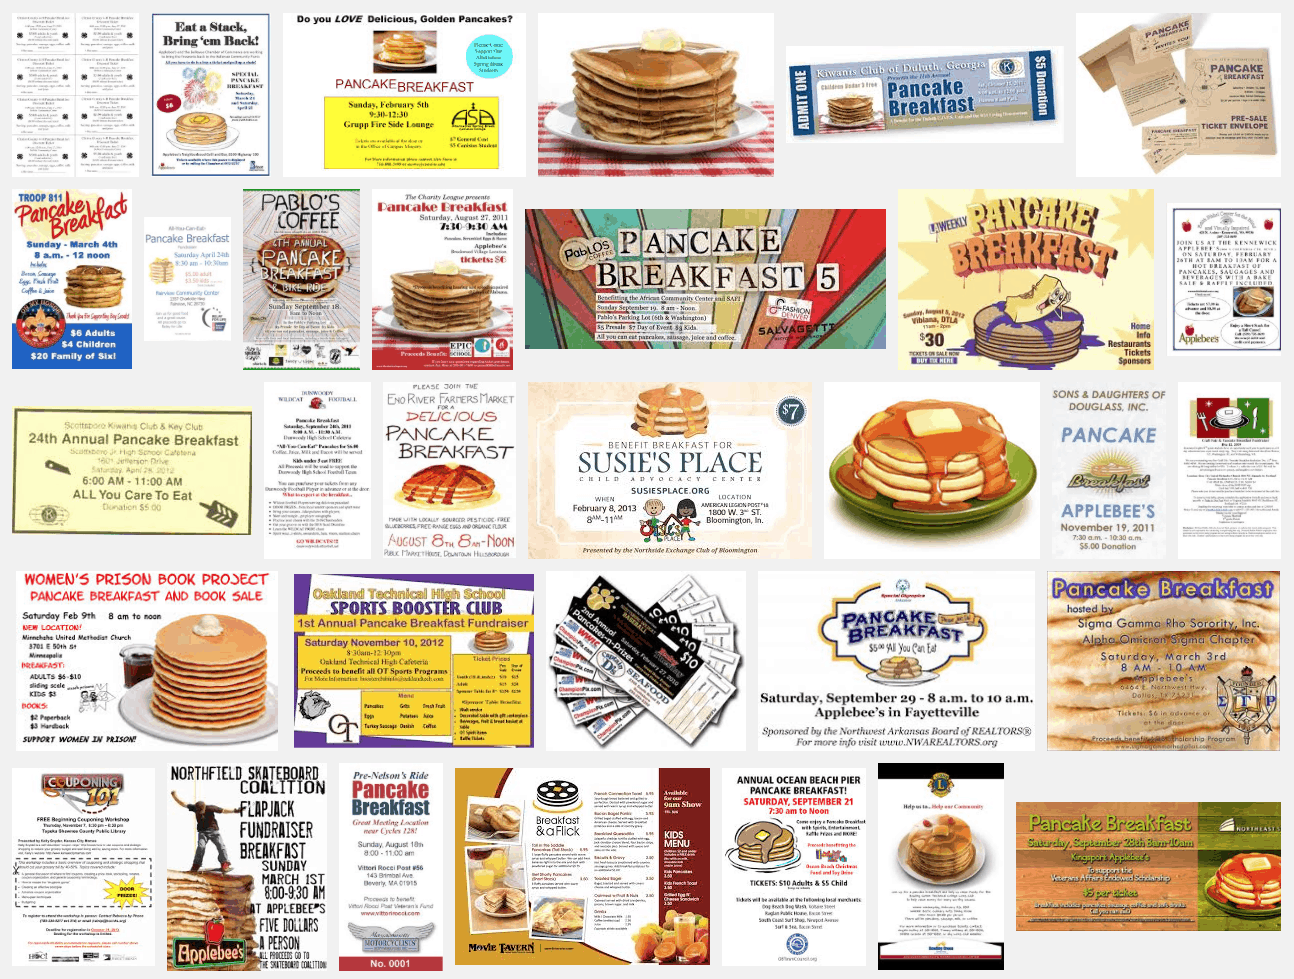 Pancake Breakfast Image Search Results